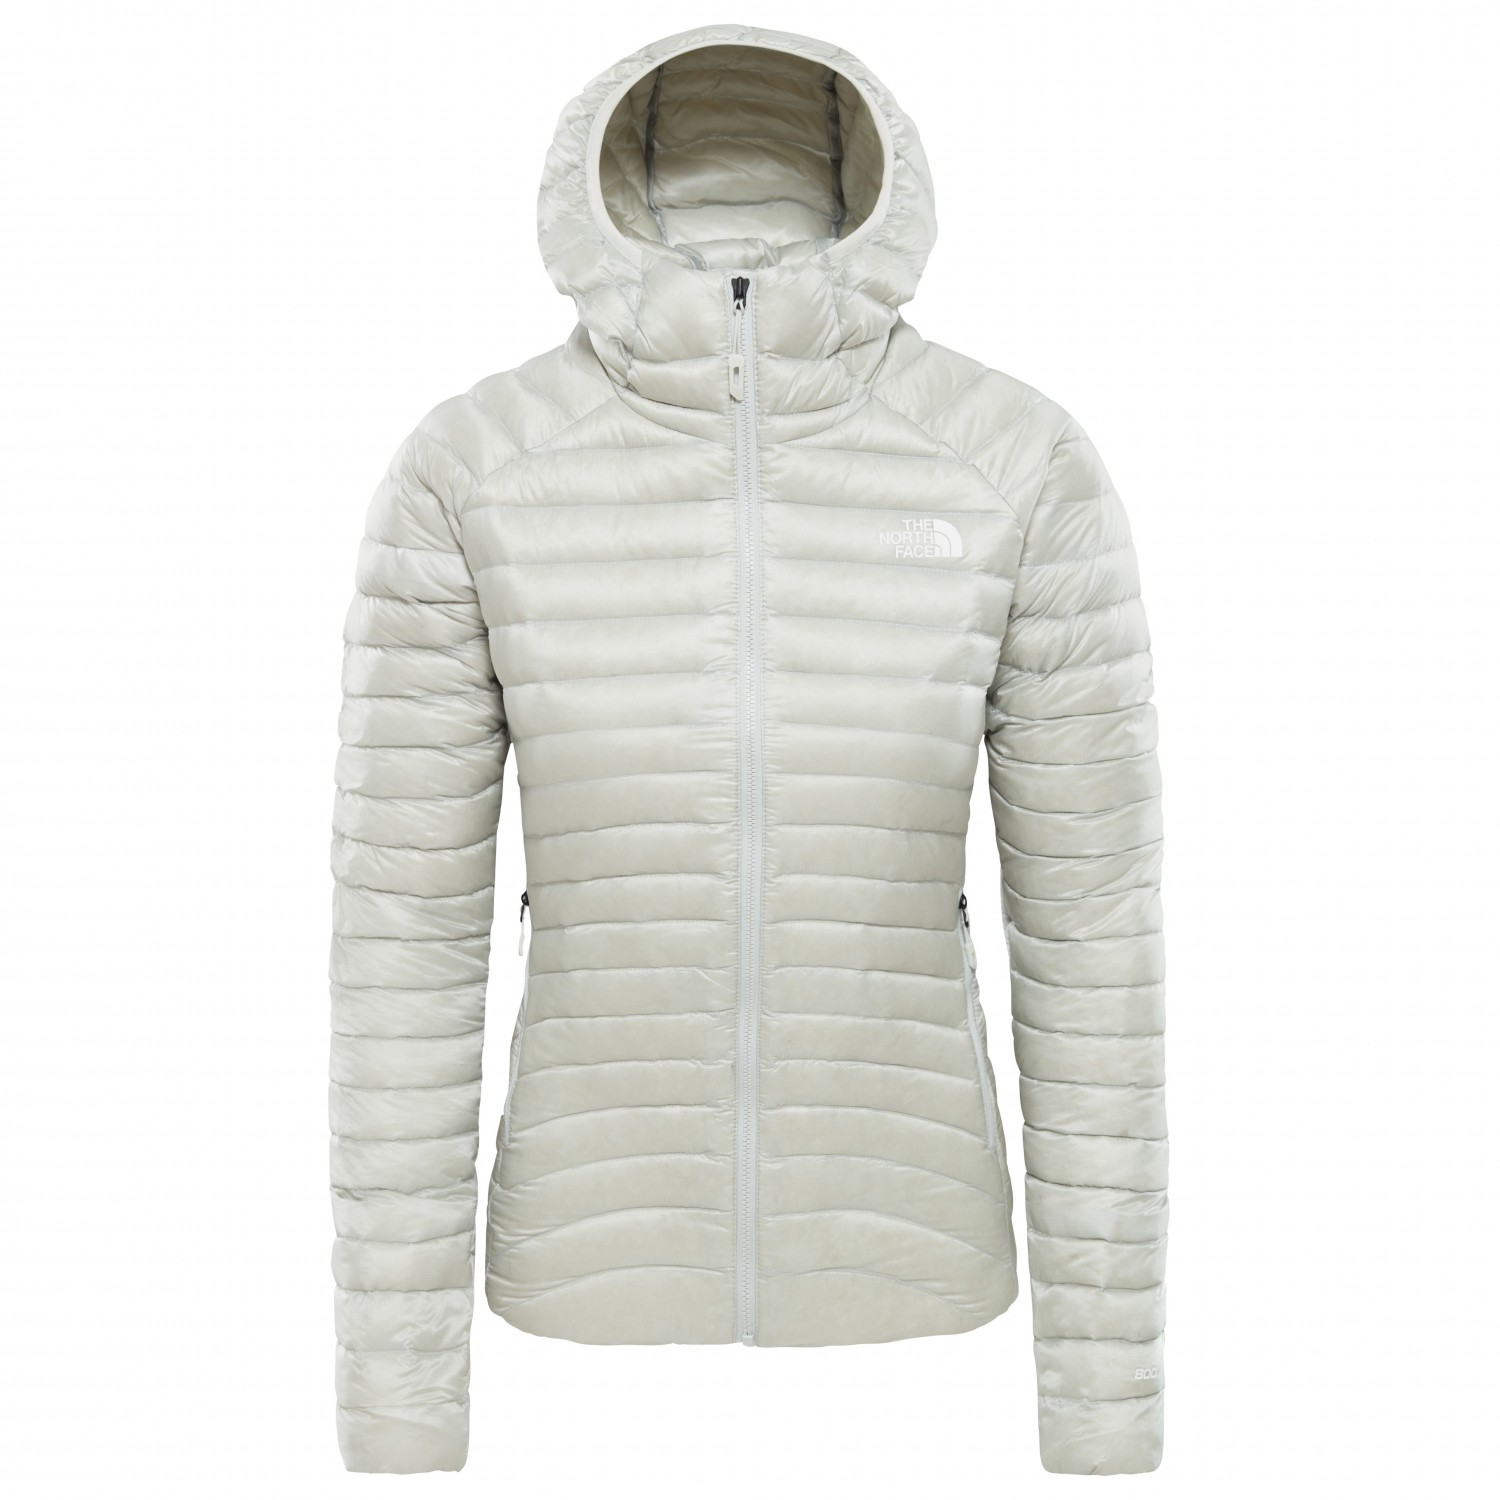 3f79d0427 purchase north face down hoodie womens grey 2c1ef 8b1a5